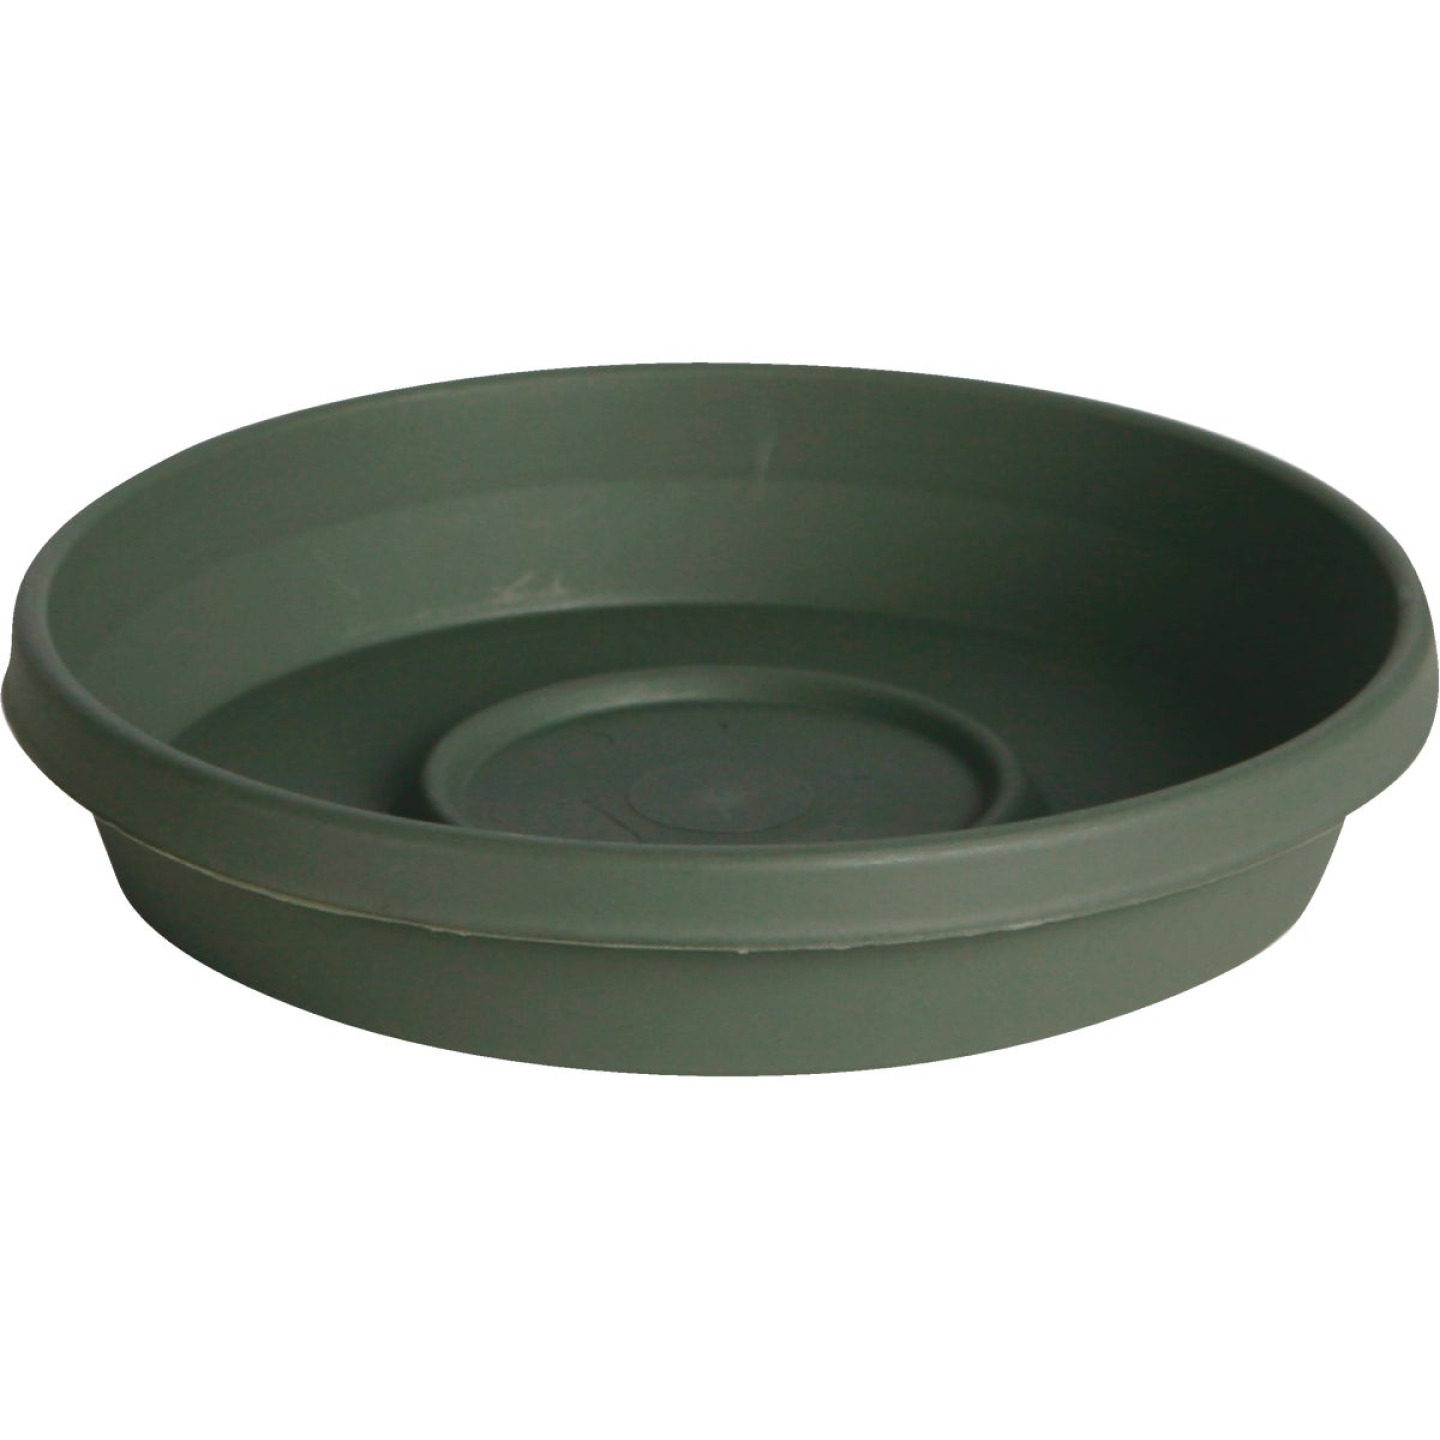 Bloem Terra Living Green 8 In. Plastic Flower Pot Saucer Image 1